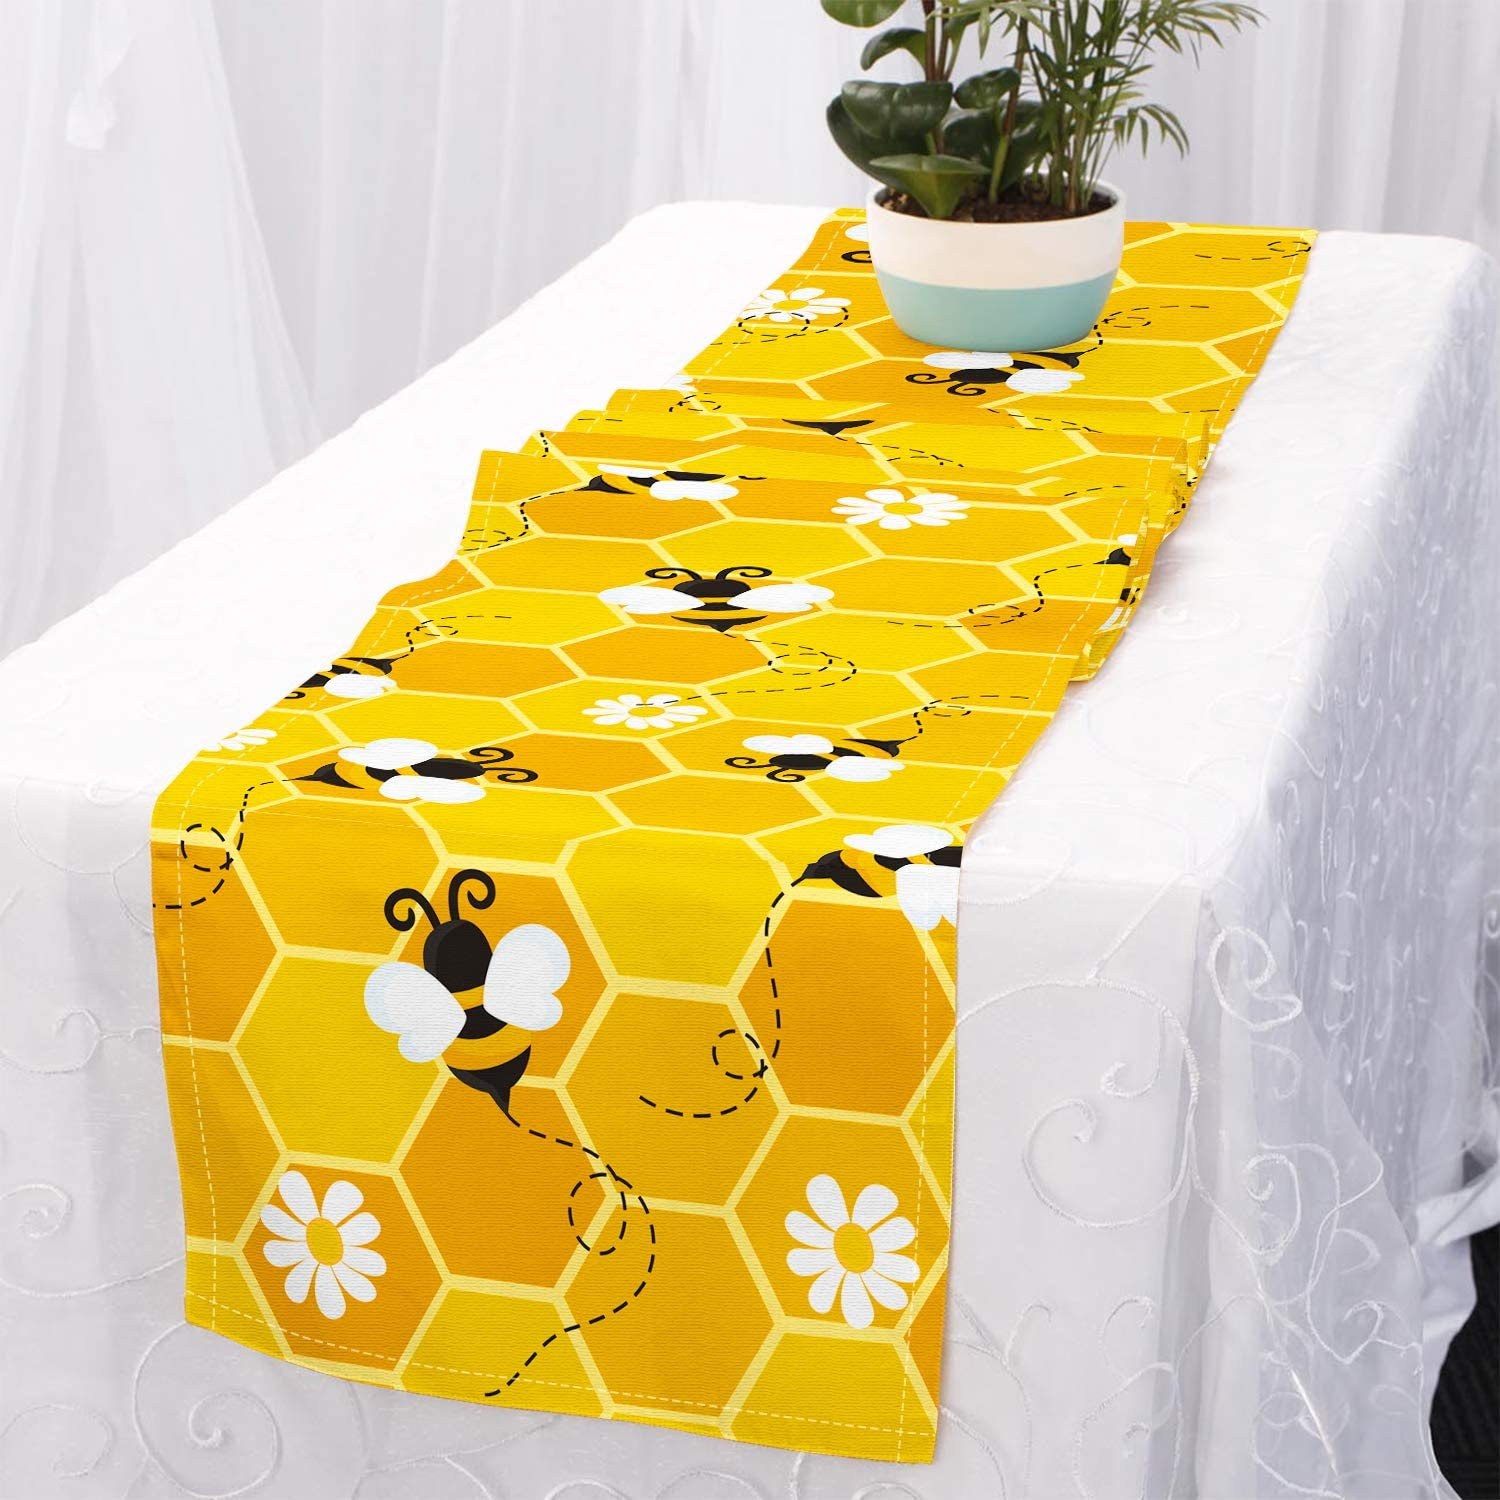 CiyvoLyeen Bumble Bee Table Runner, Honeycomb Beehive Yellow Table Setting Dresser Scarves, Spring Summer Table Fabric Decor for Restaurant Kitchen Dining Banquet Party Events